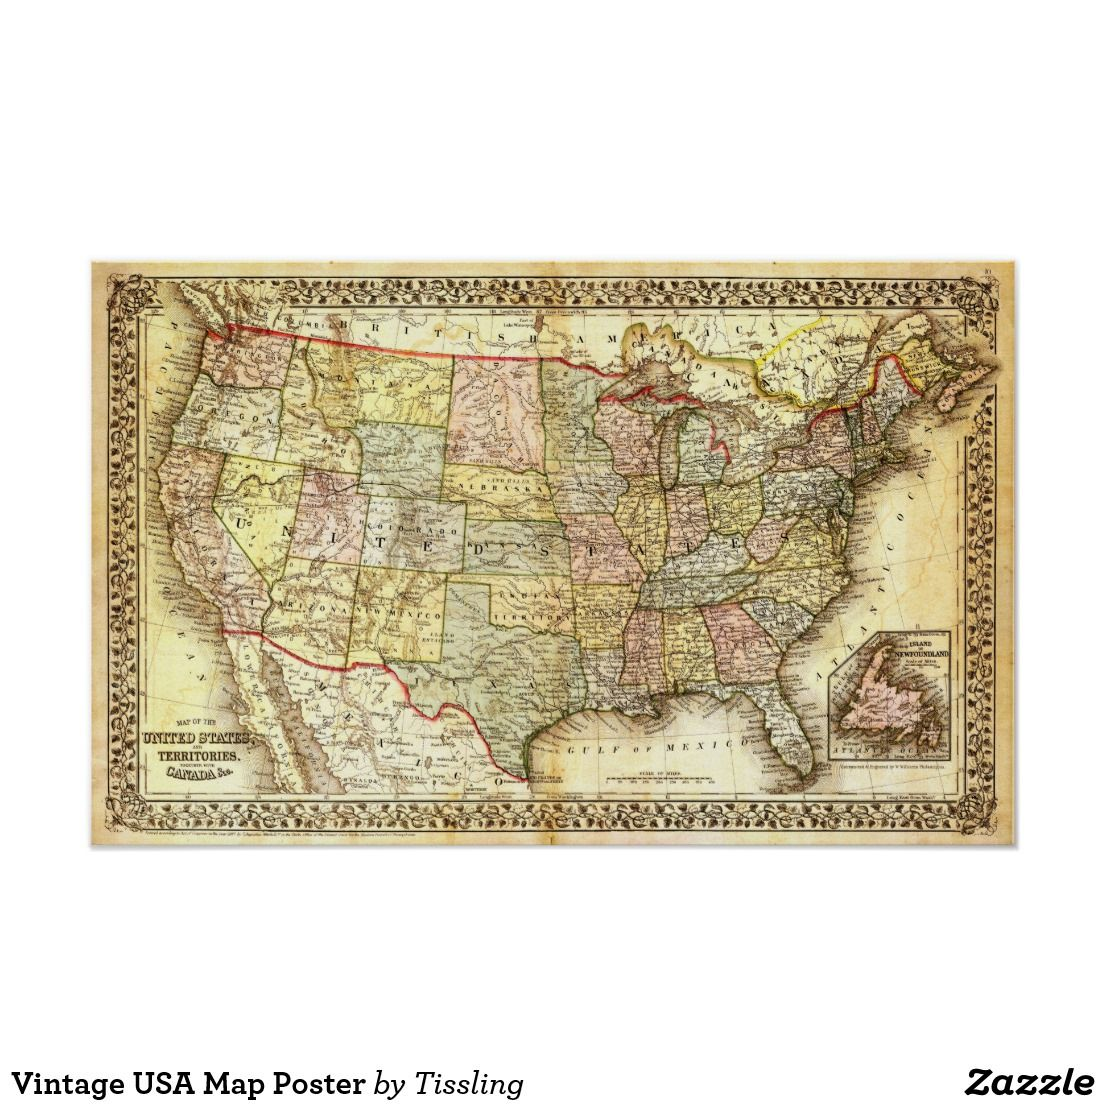 Vintage USA Map Poster | Zazzle.com in 2019 | Map Art ...